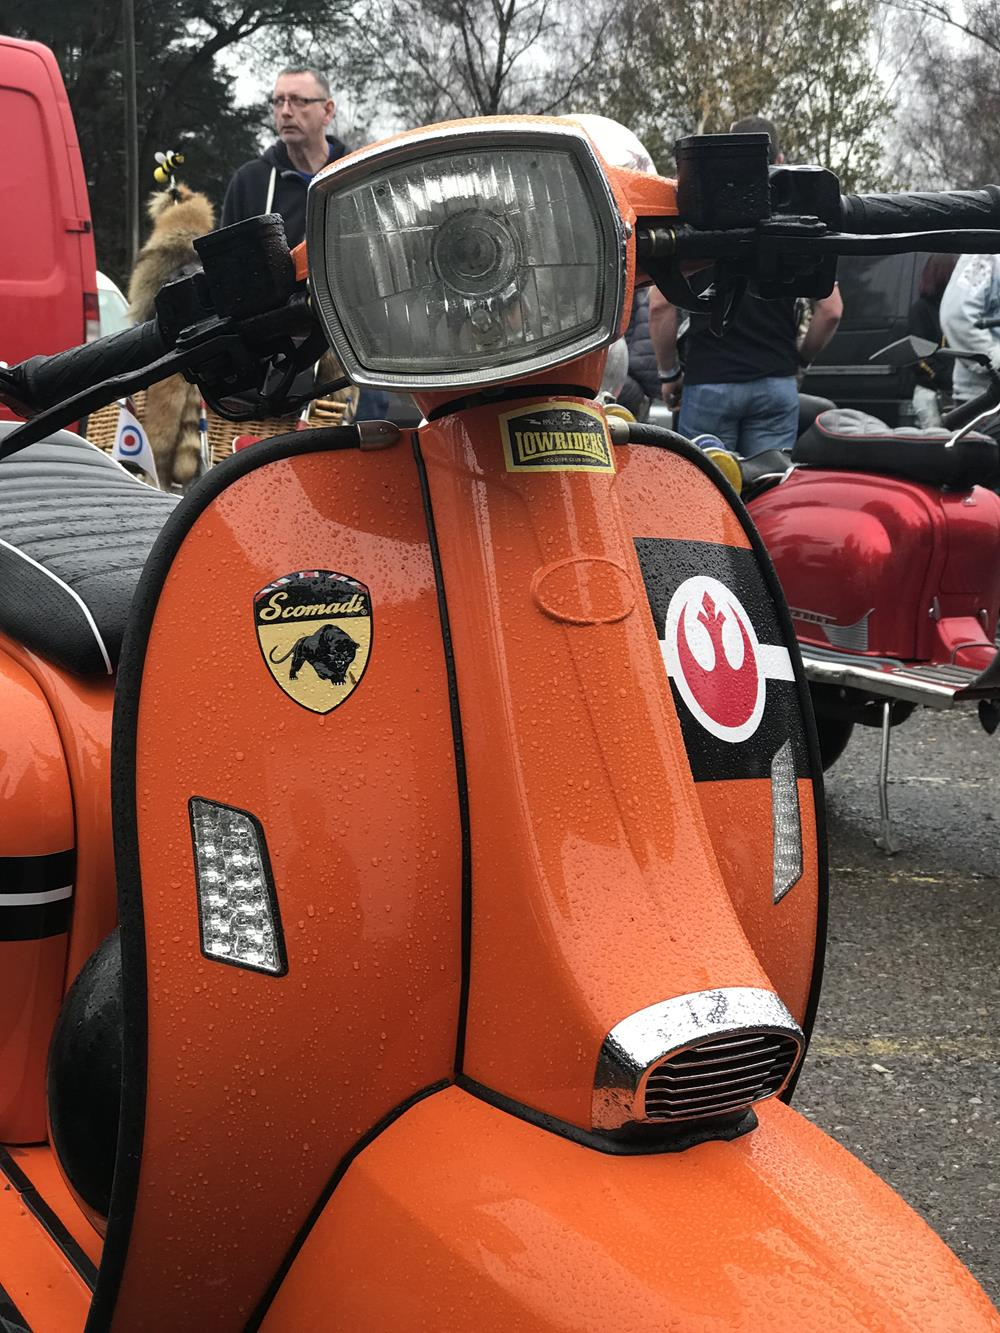 Orange Scomadi scooter